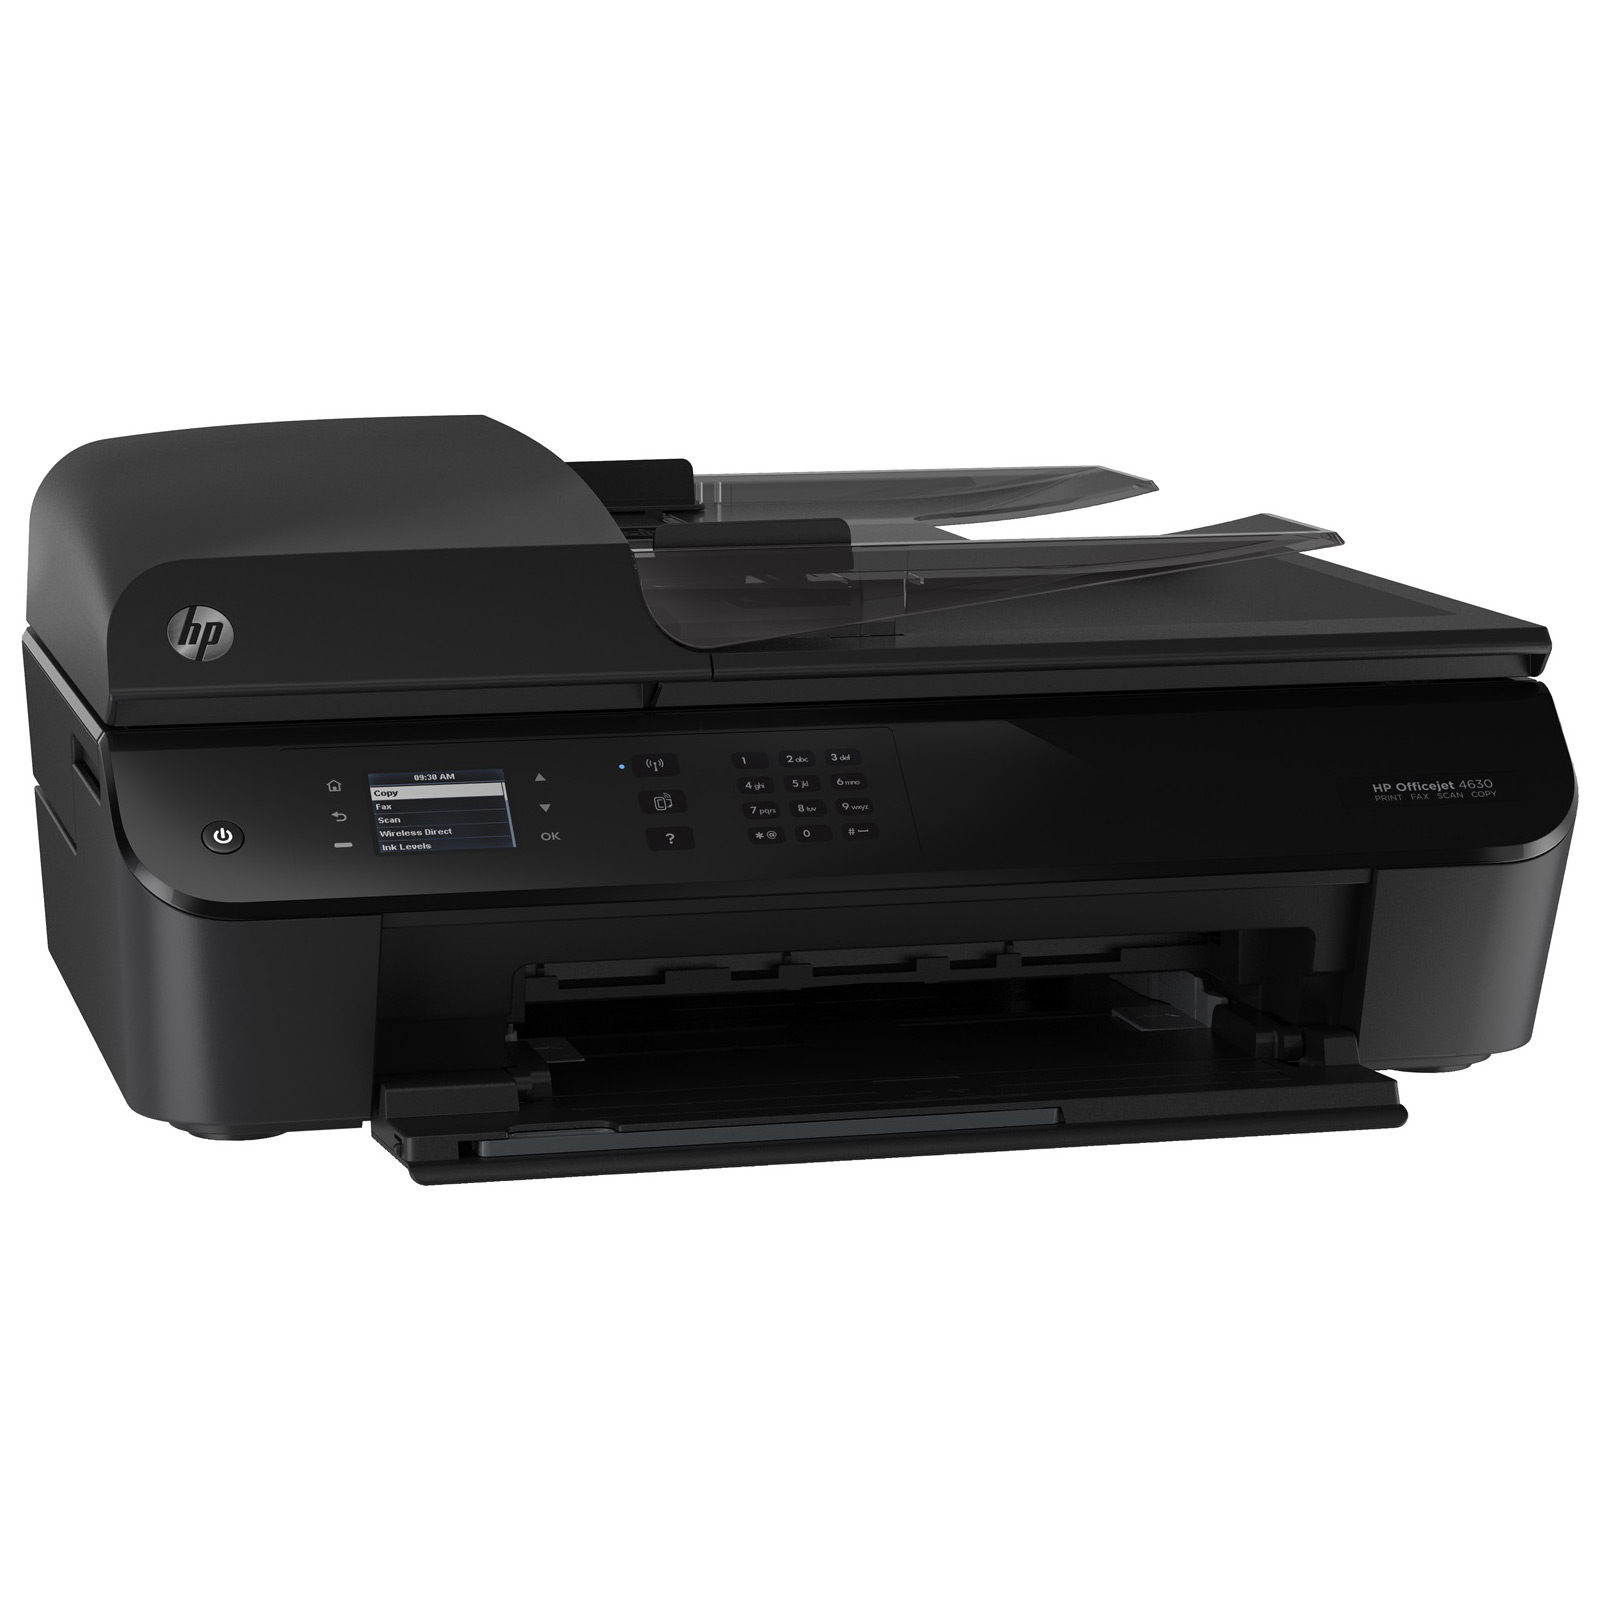 hp officejet 4630 imprimante multifonction hp sur ldlc. Black Bedroom Furniture Sets. Home Design Ideas